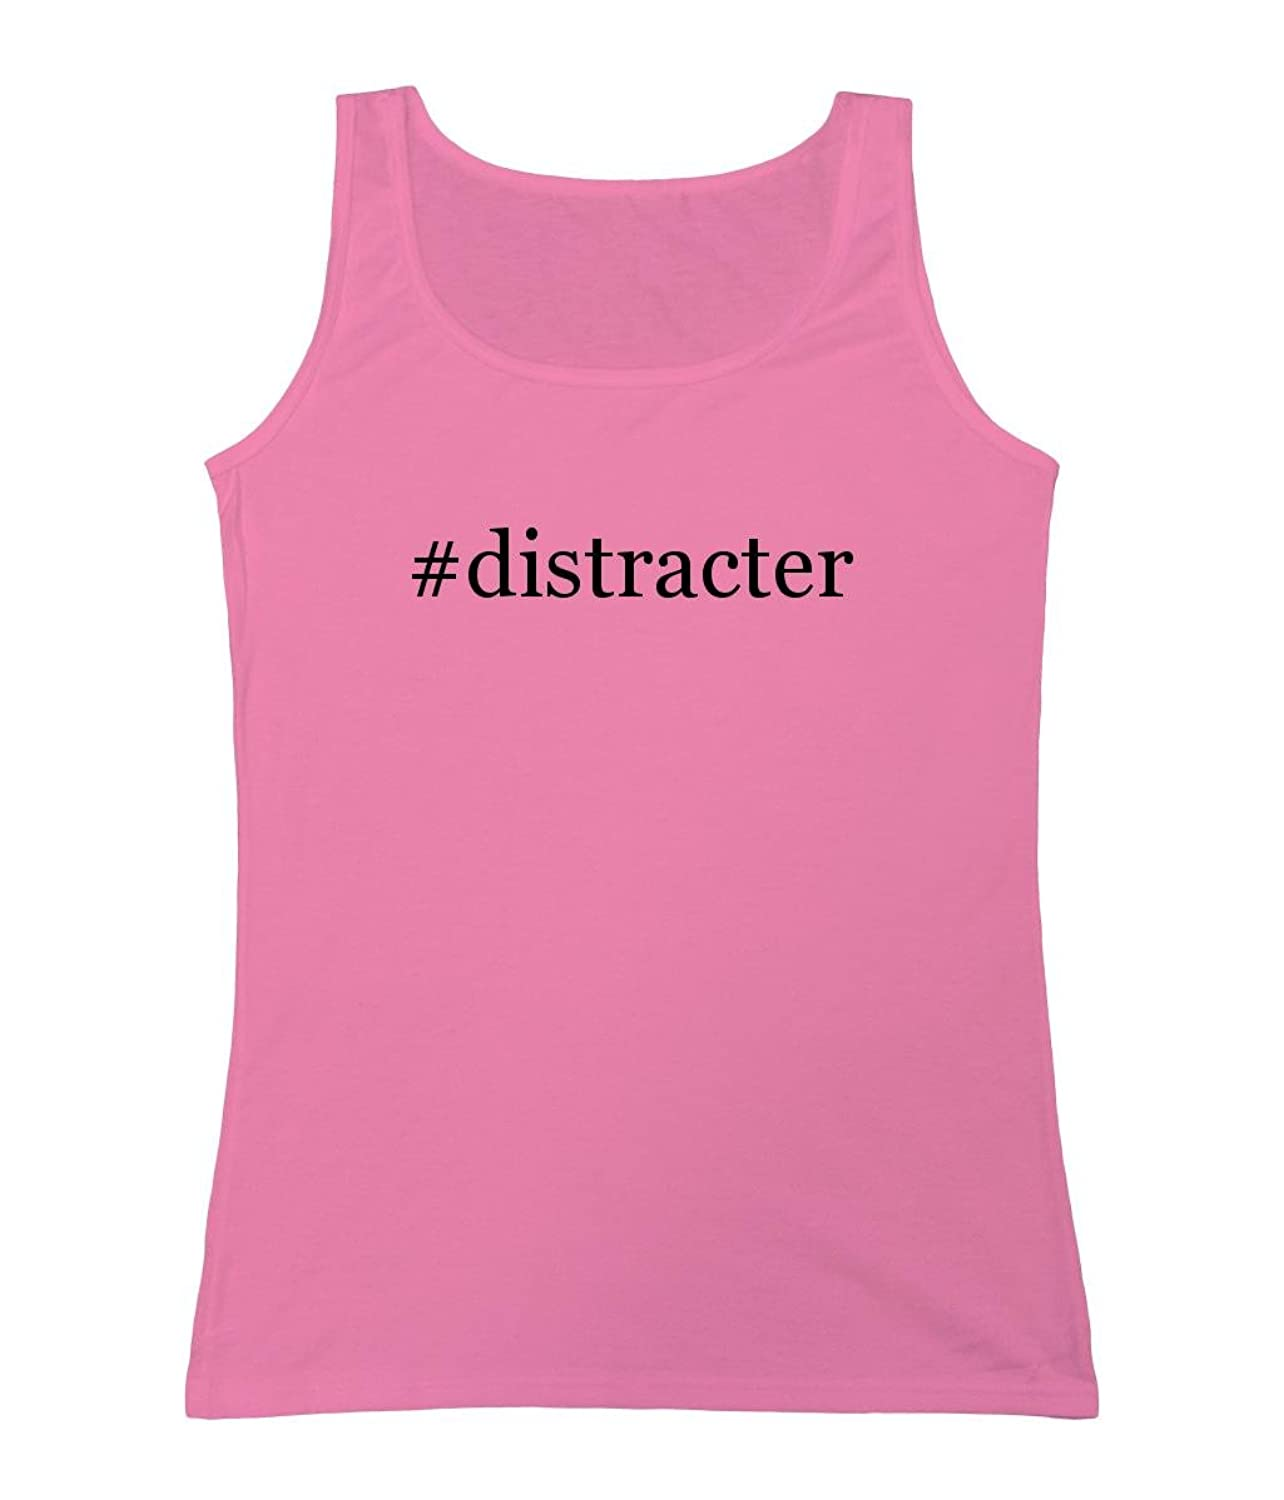 #distracter - Women's Hashtag Tank Top